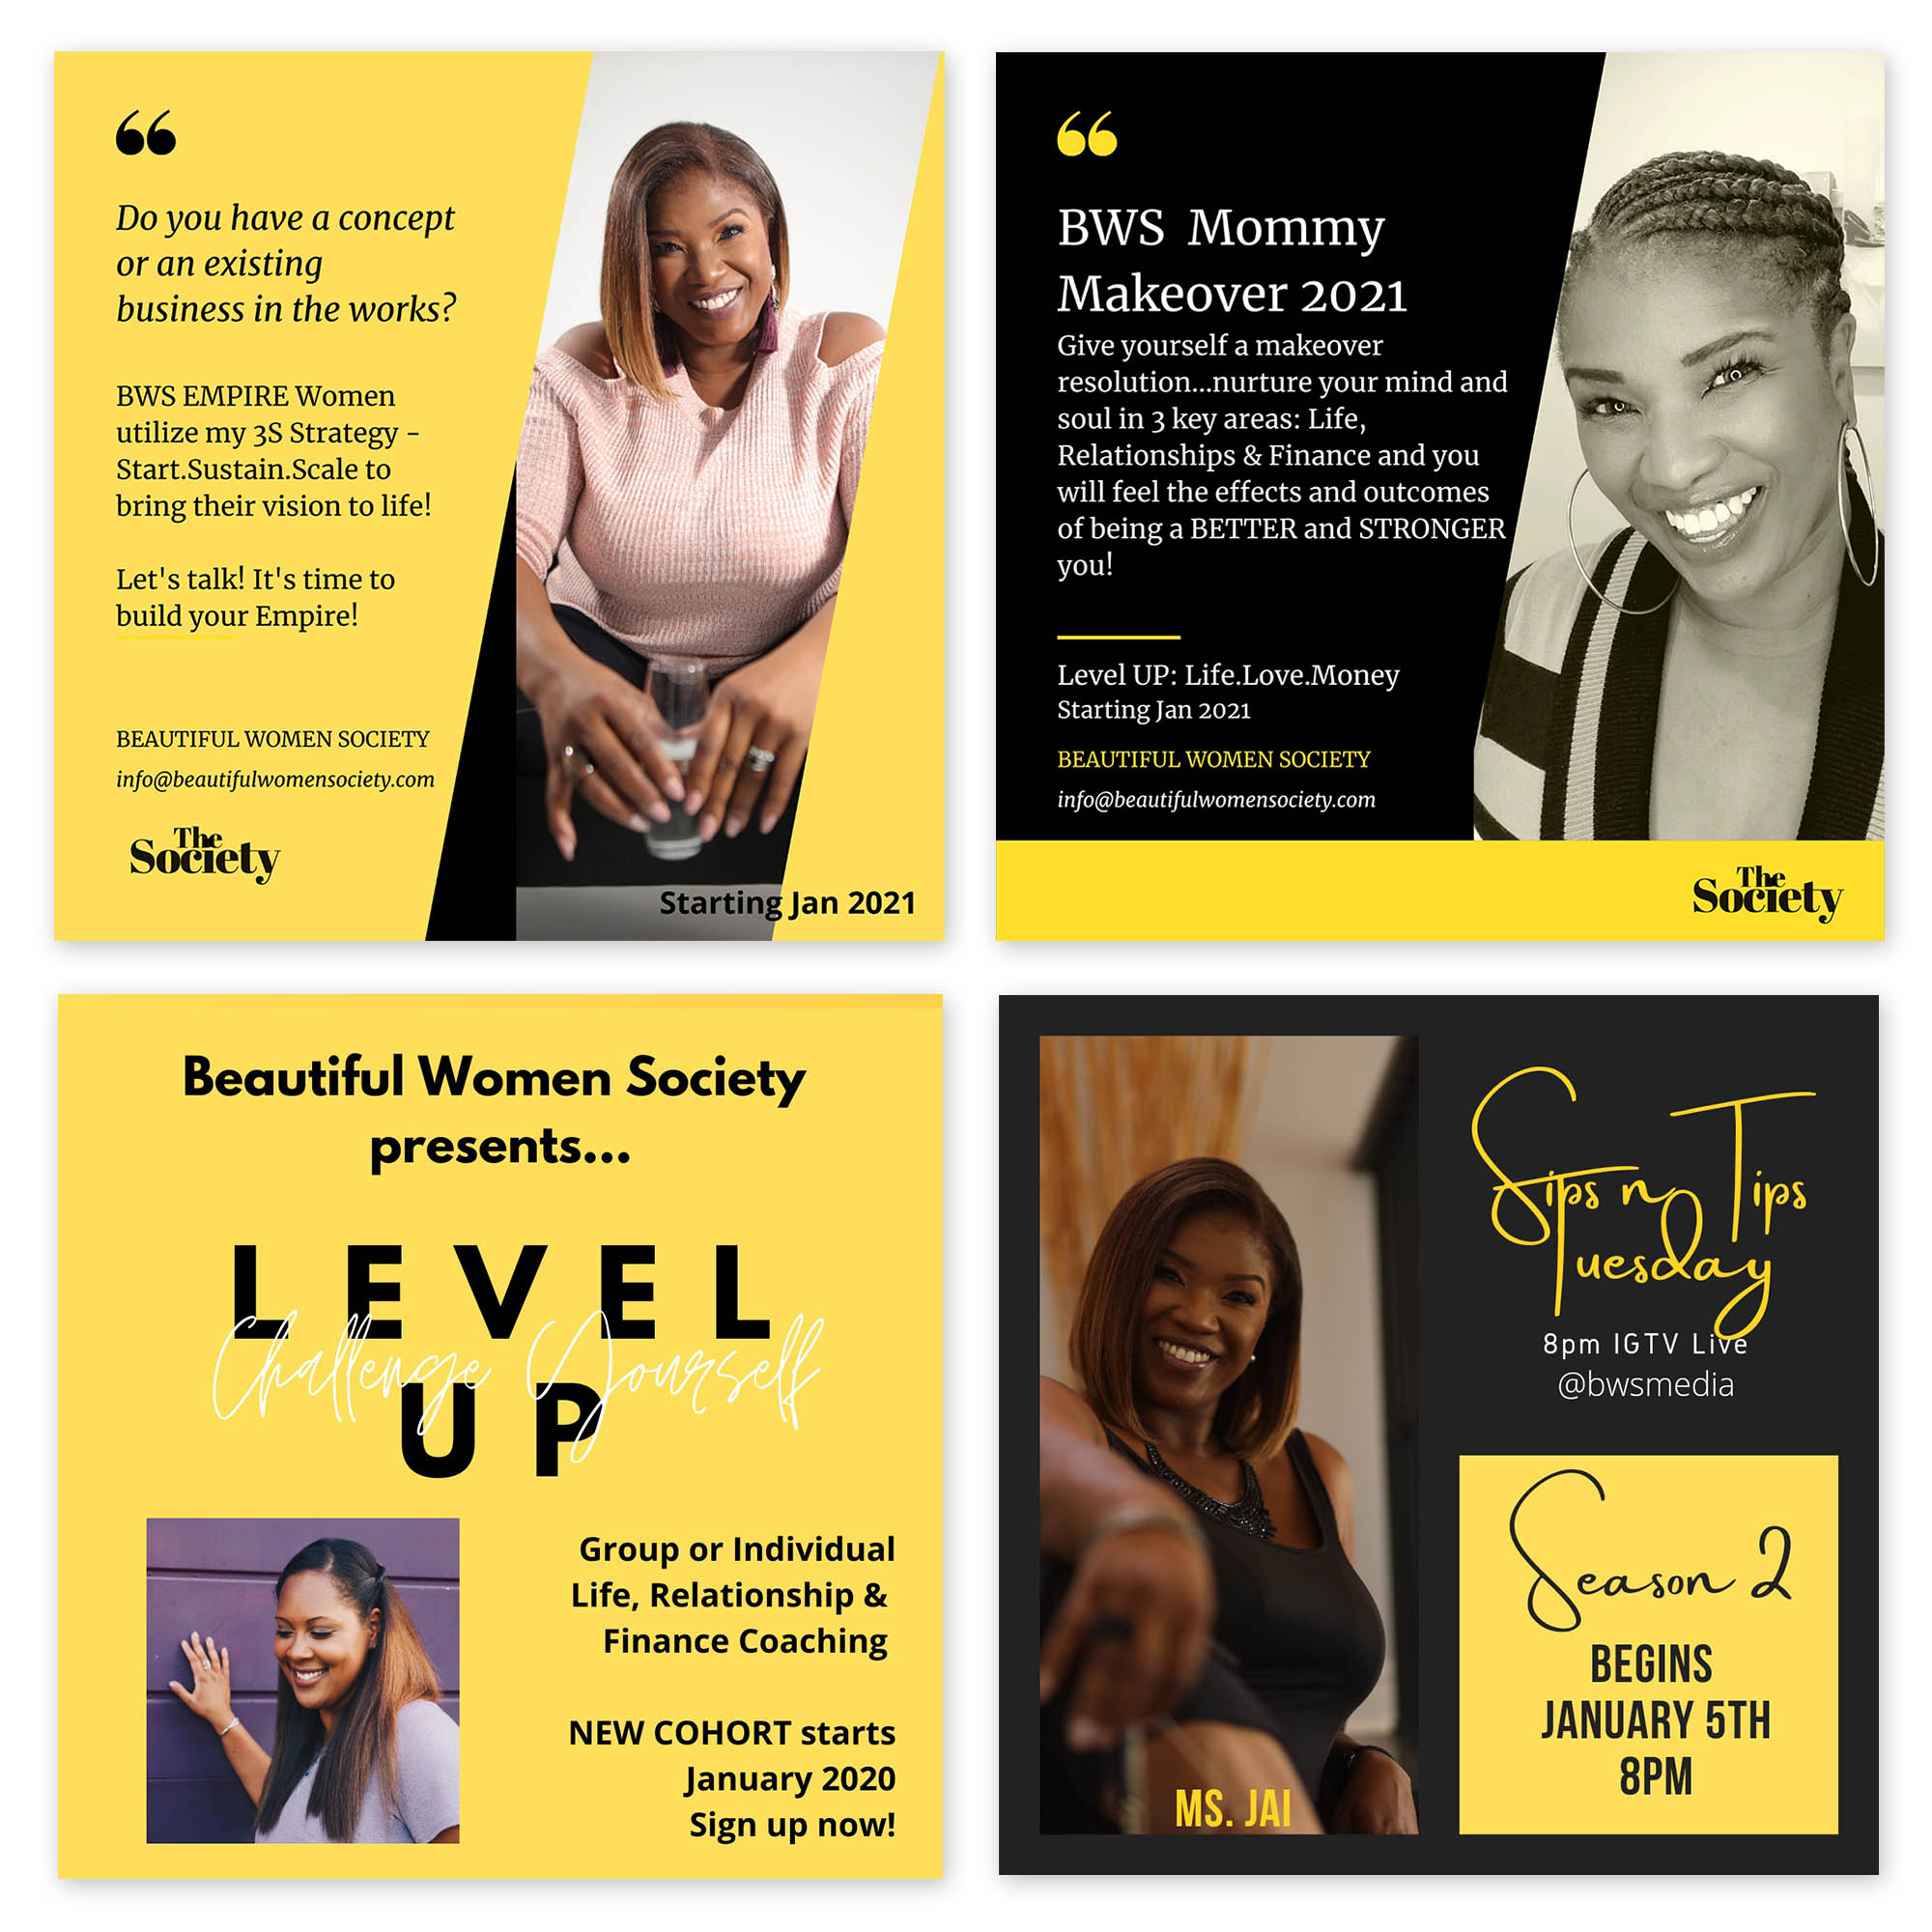 Social media marketing for the Beautiful Women's Society. We utilized our WhatsApp Promotion, to send their marketing message to targeted groups on WhatsApp.